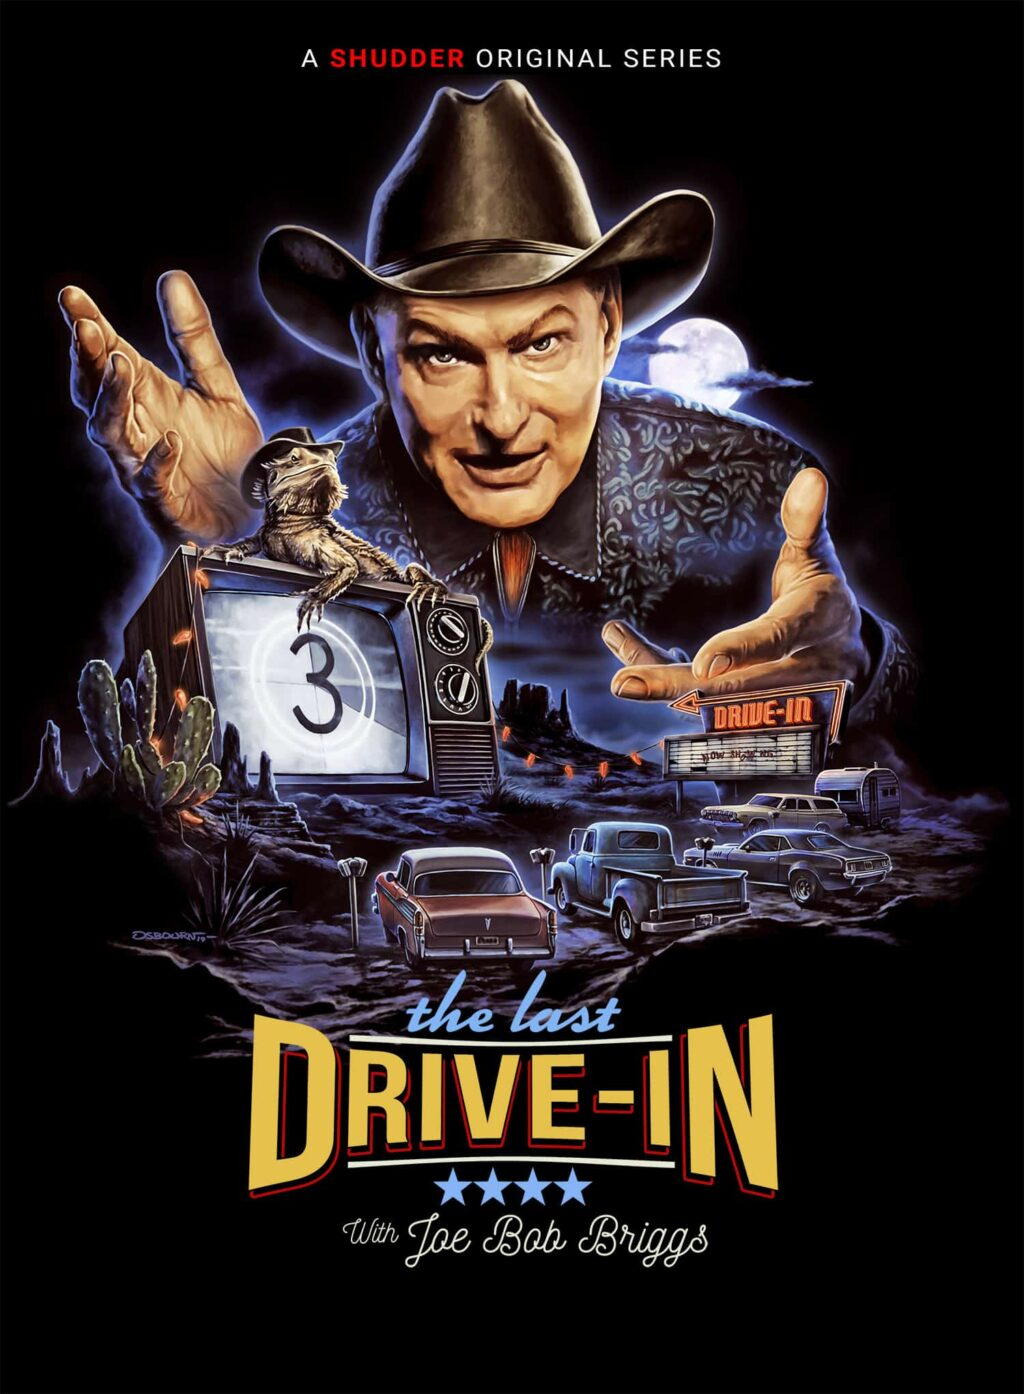 The Last Drive In series 1024x1394 - Exclusive: Key Art for Shudder's Upcoming Season of THE LAST DRIVE-IN WITH JOE BOB BRIGGS